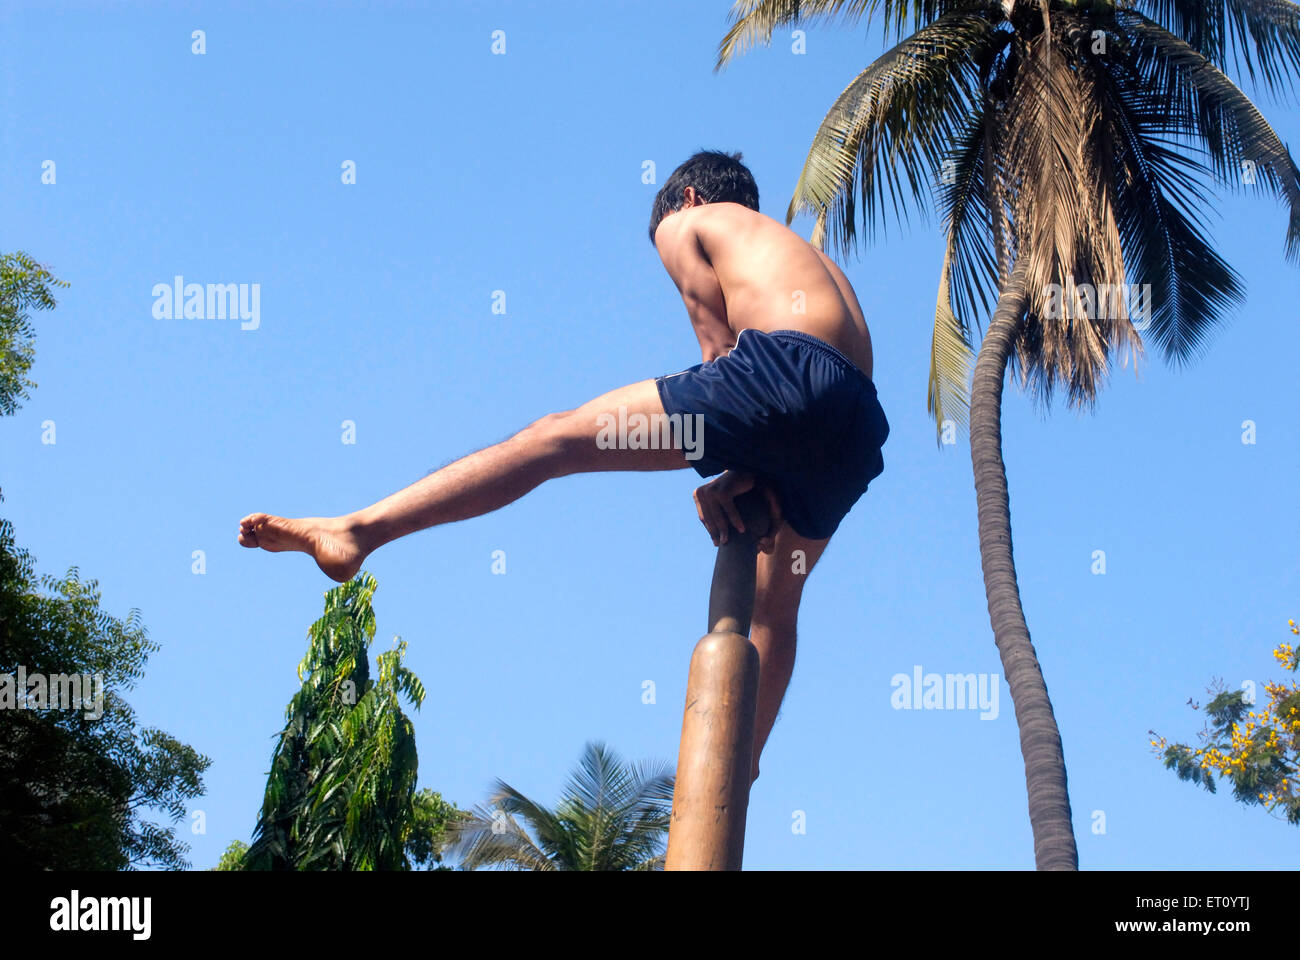 Malkhamb young boy performing gymnastics ; Thane ; Maharashtra ; India 2009 - Stock Image